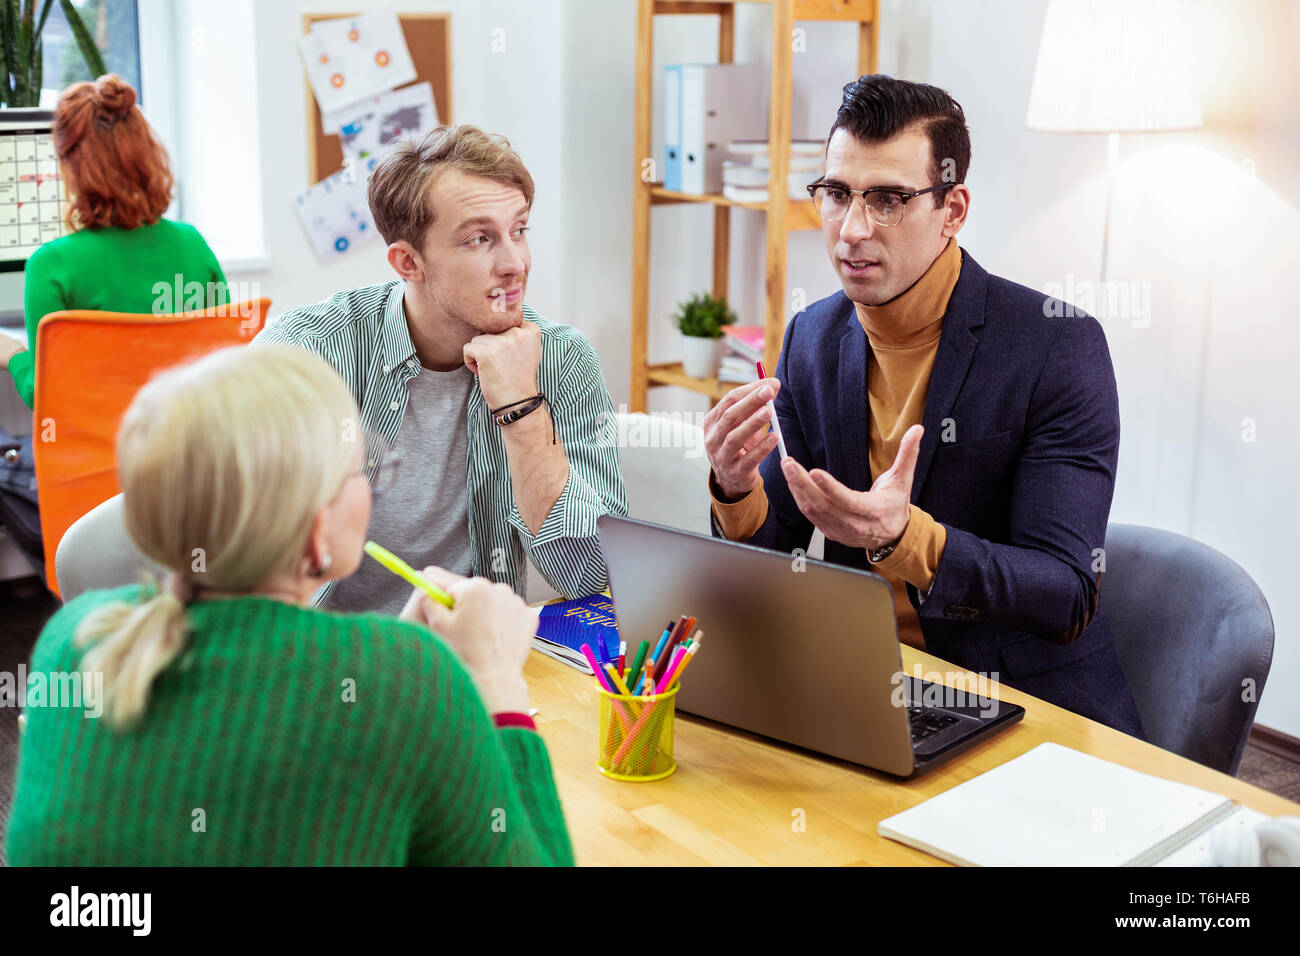 Serious nice young man talking about work - Stock Image